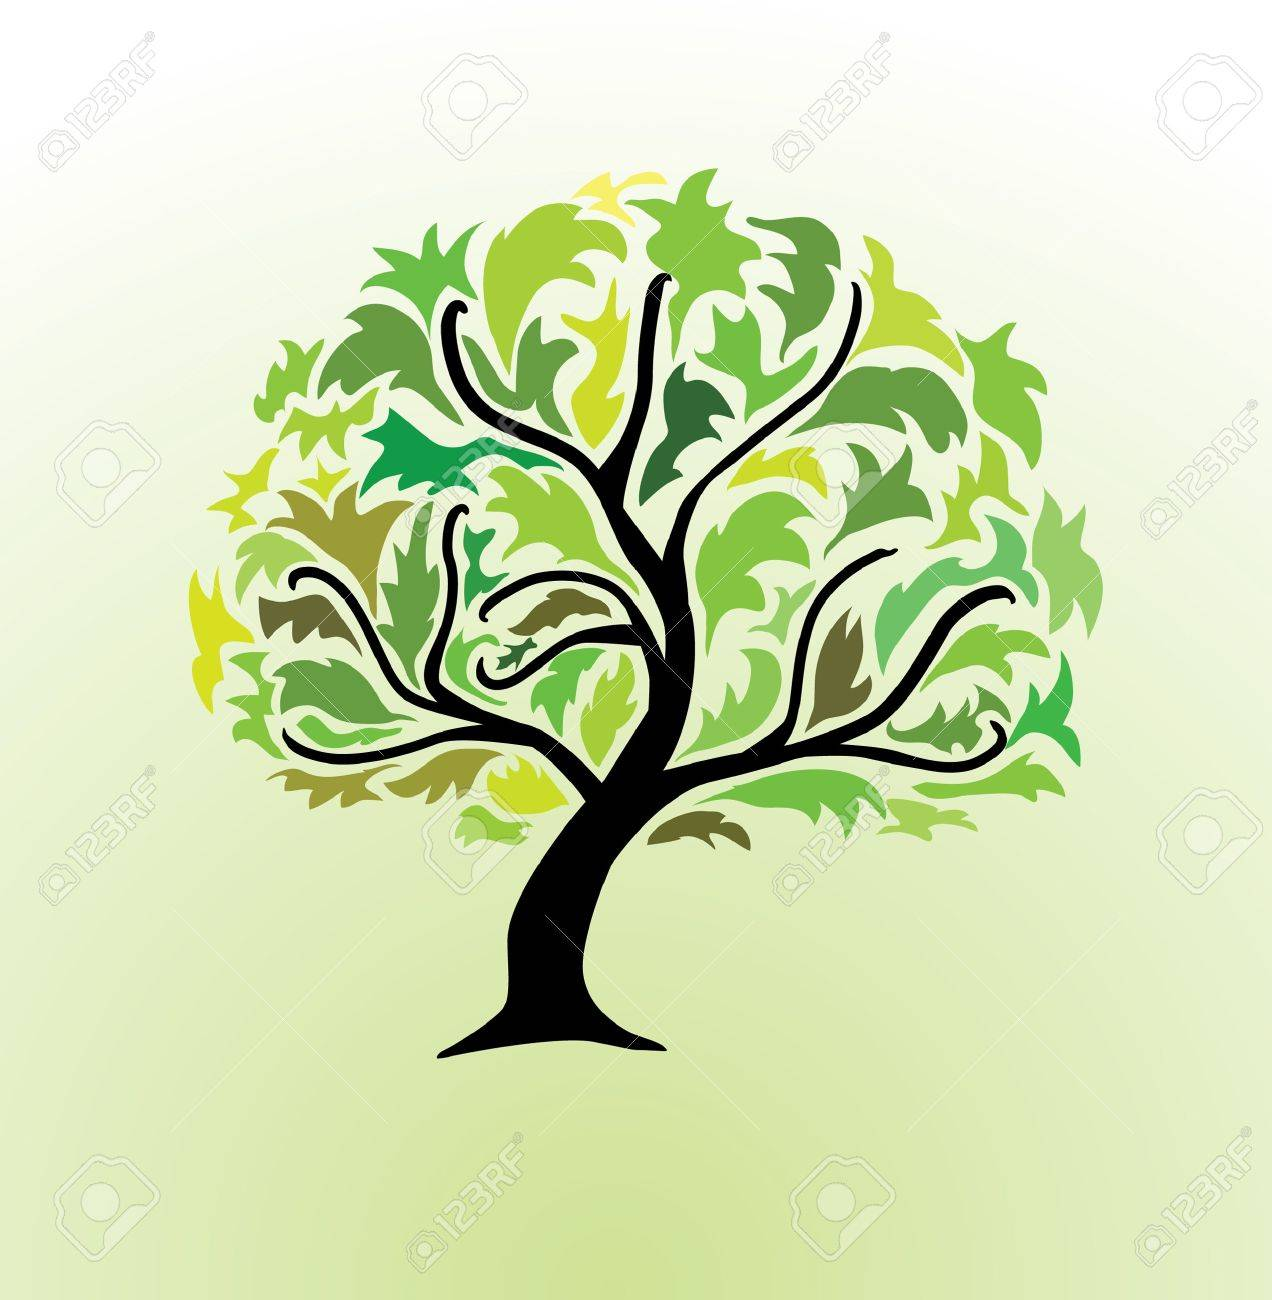 abstract green tree, symbol of nature Stock Vector - 9691511